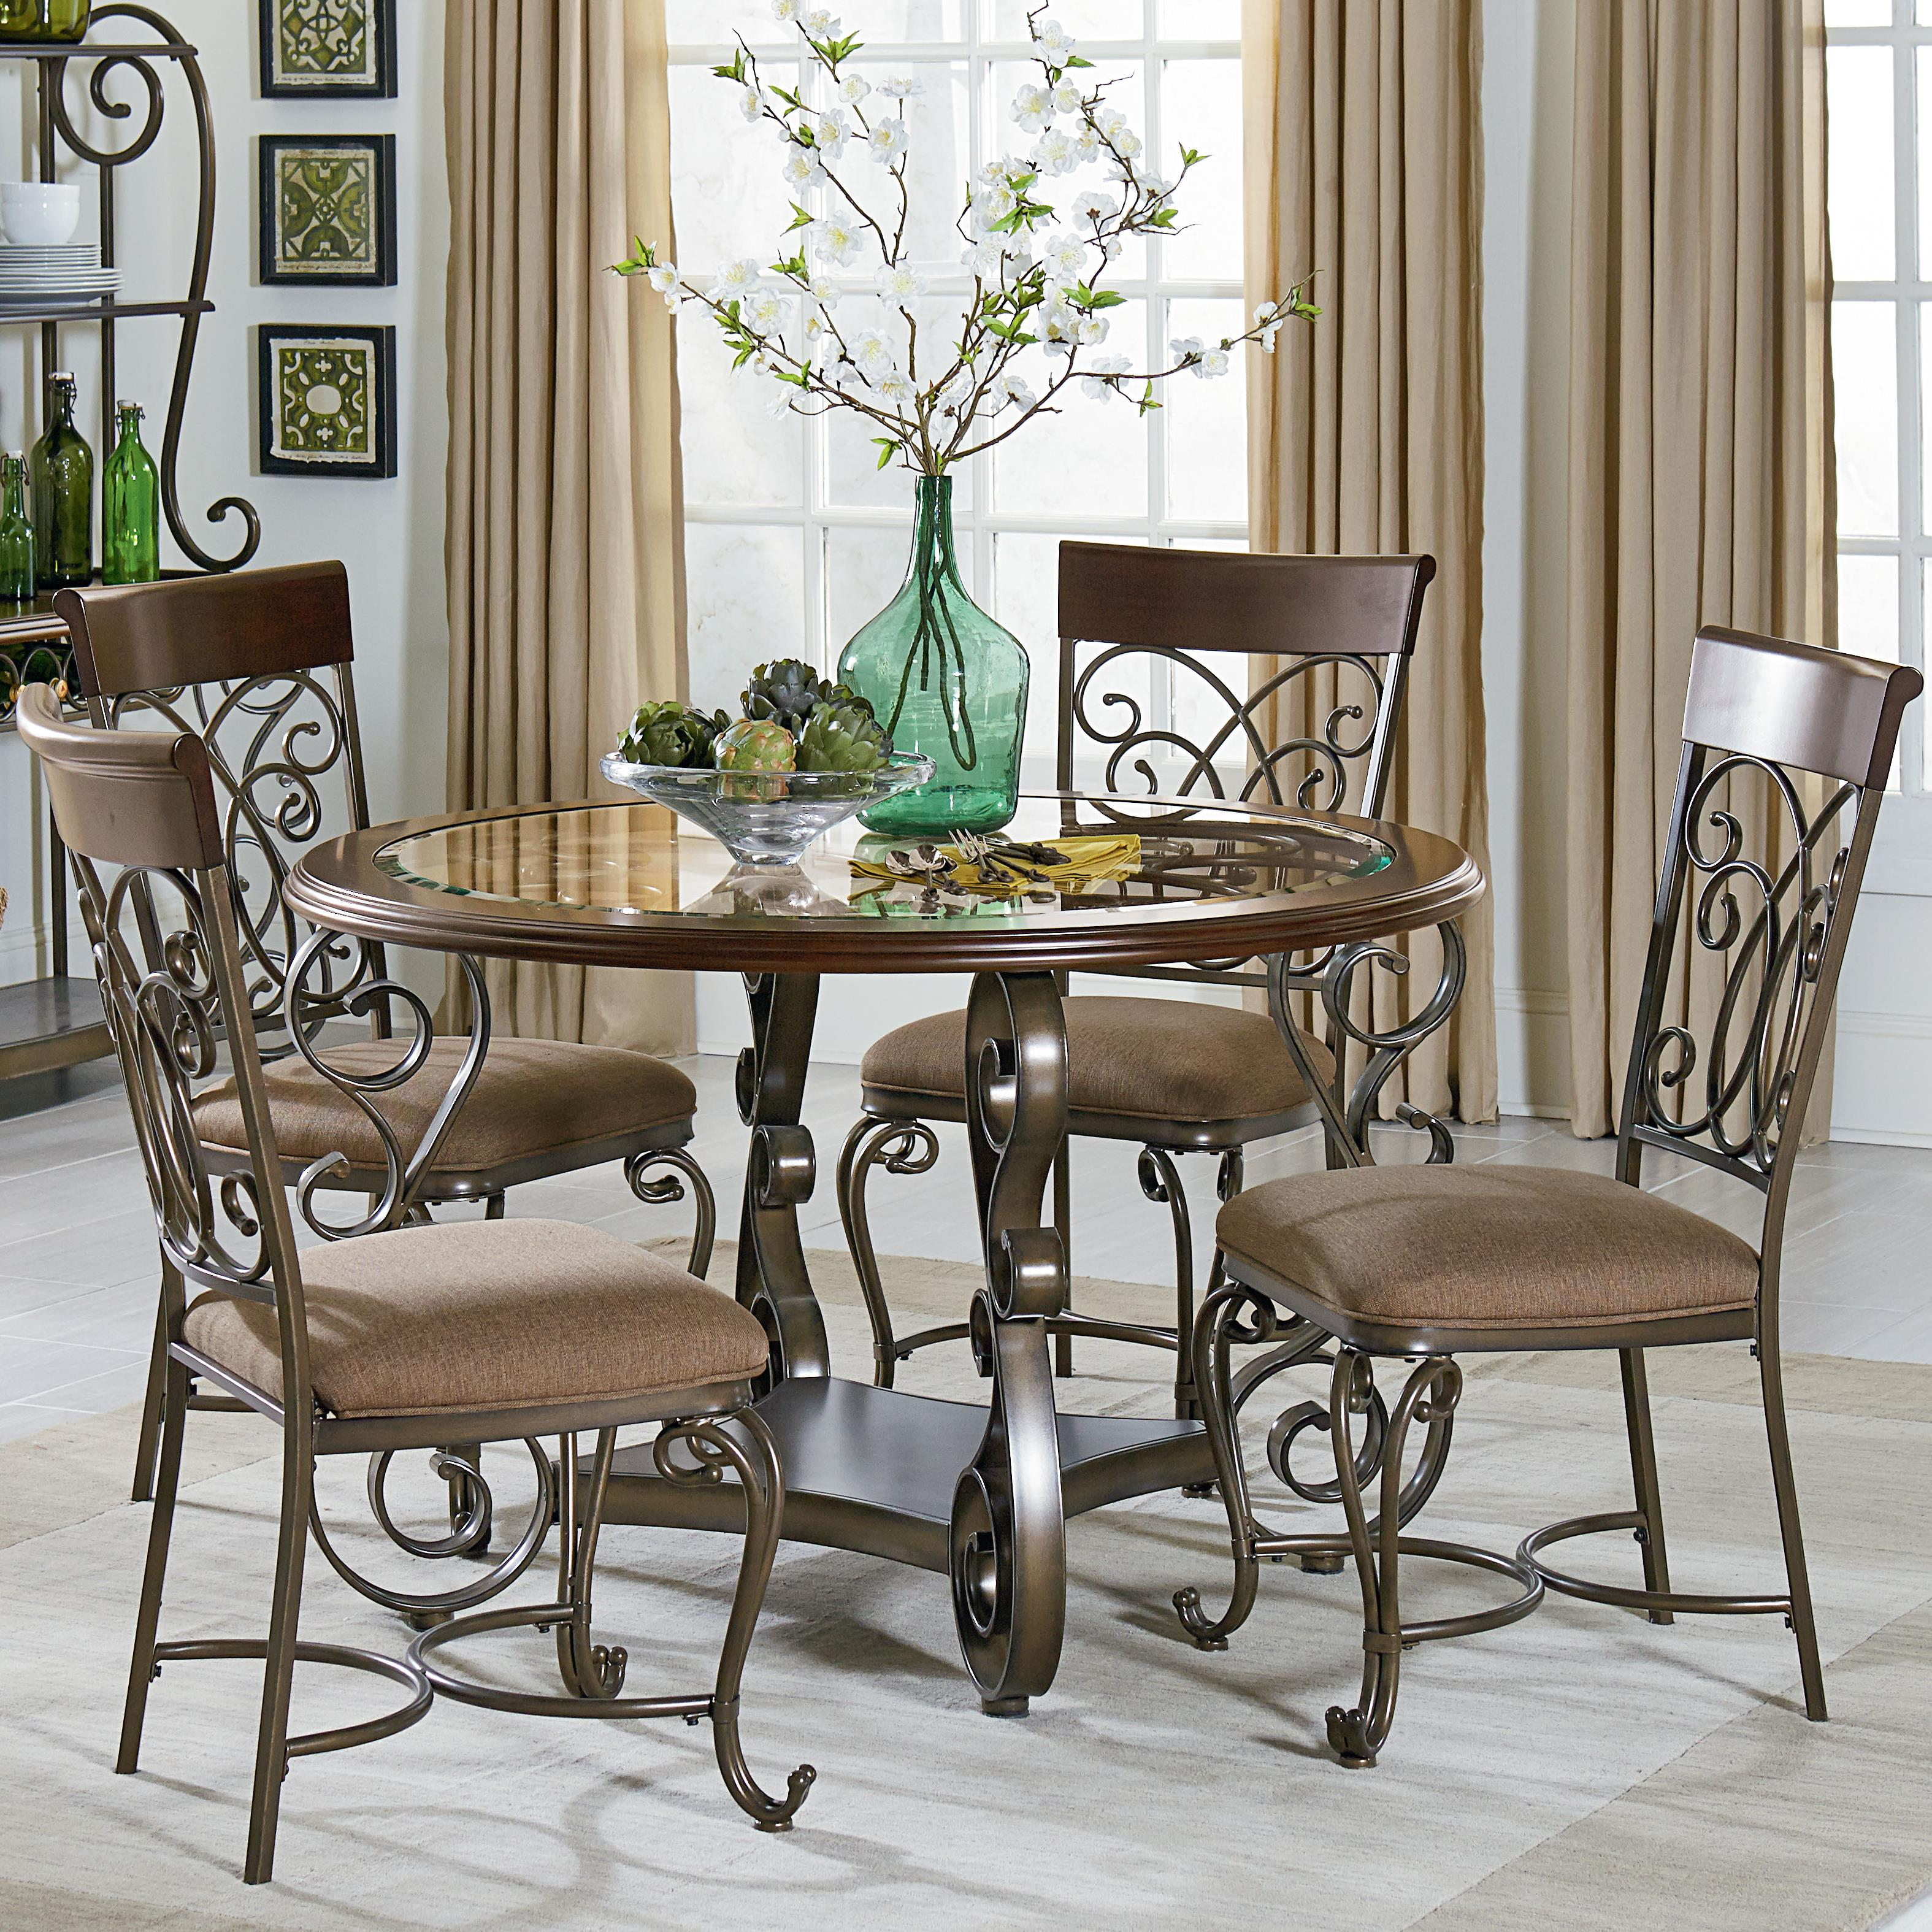 Standard furniture bombay round table and chair set with for Metal dining room chairs